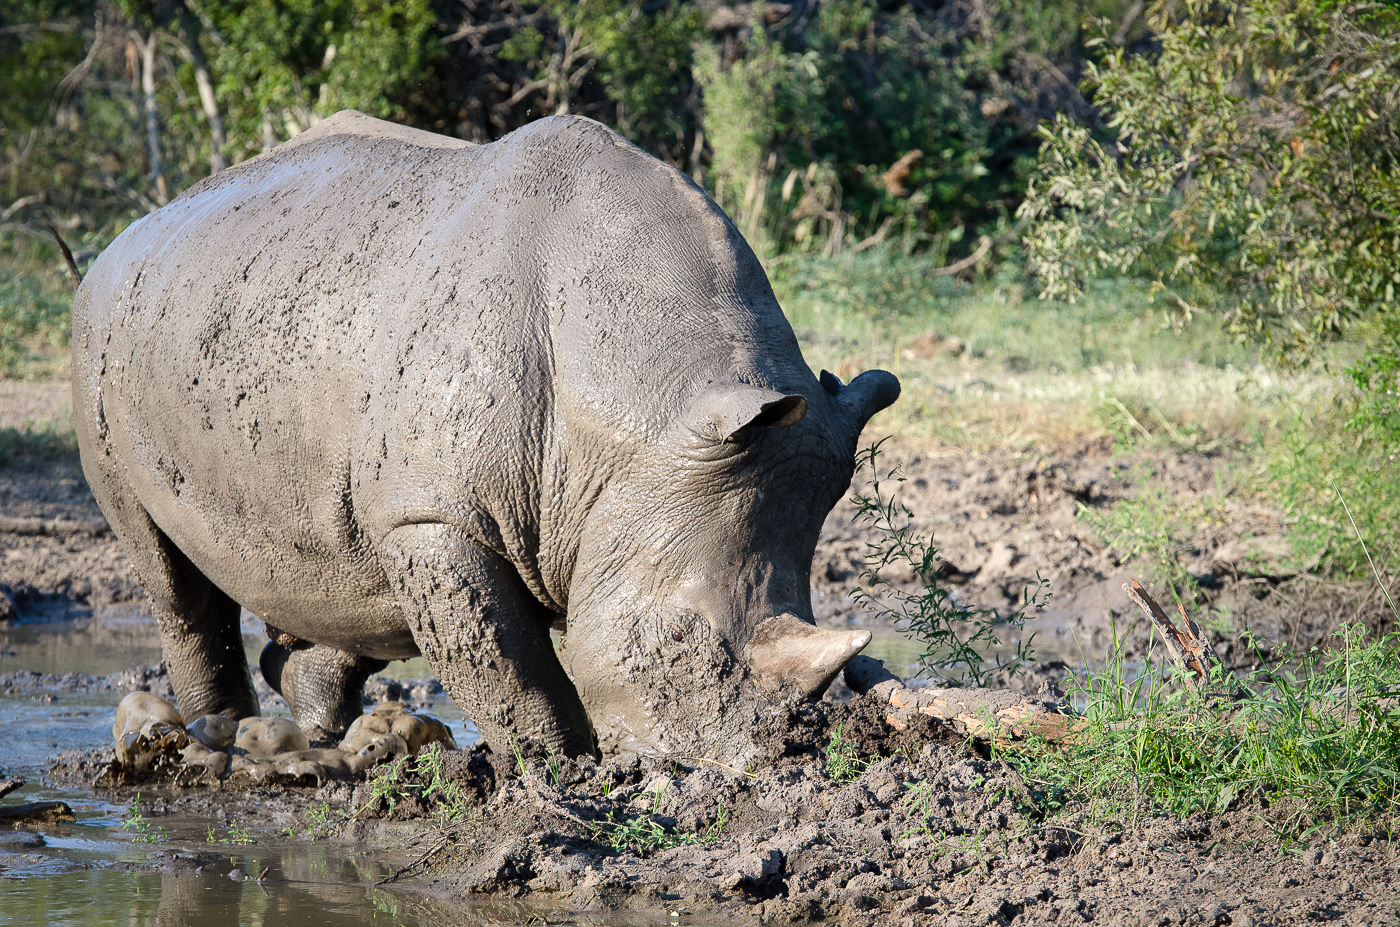 Rhino mud bath. KP